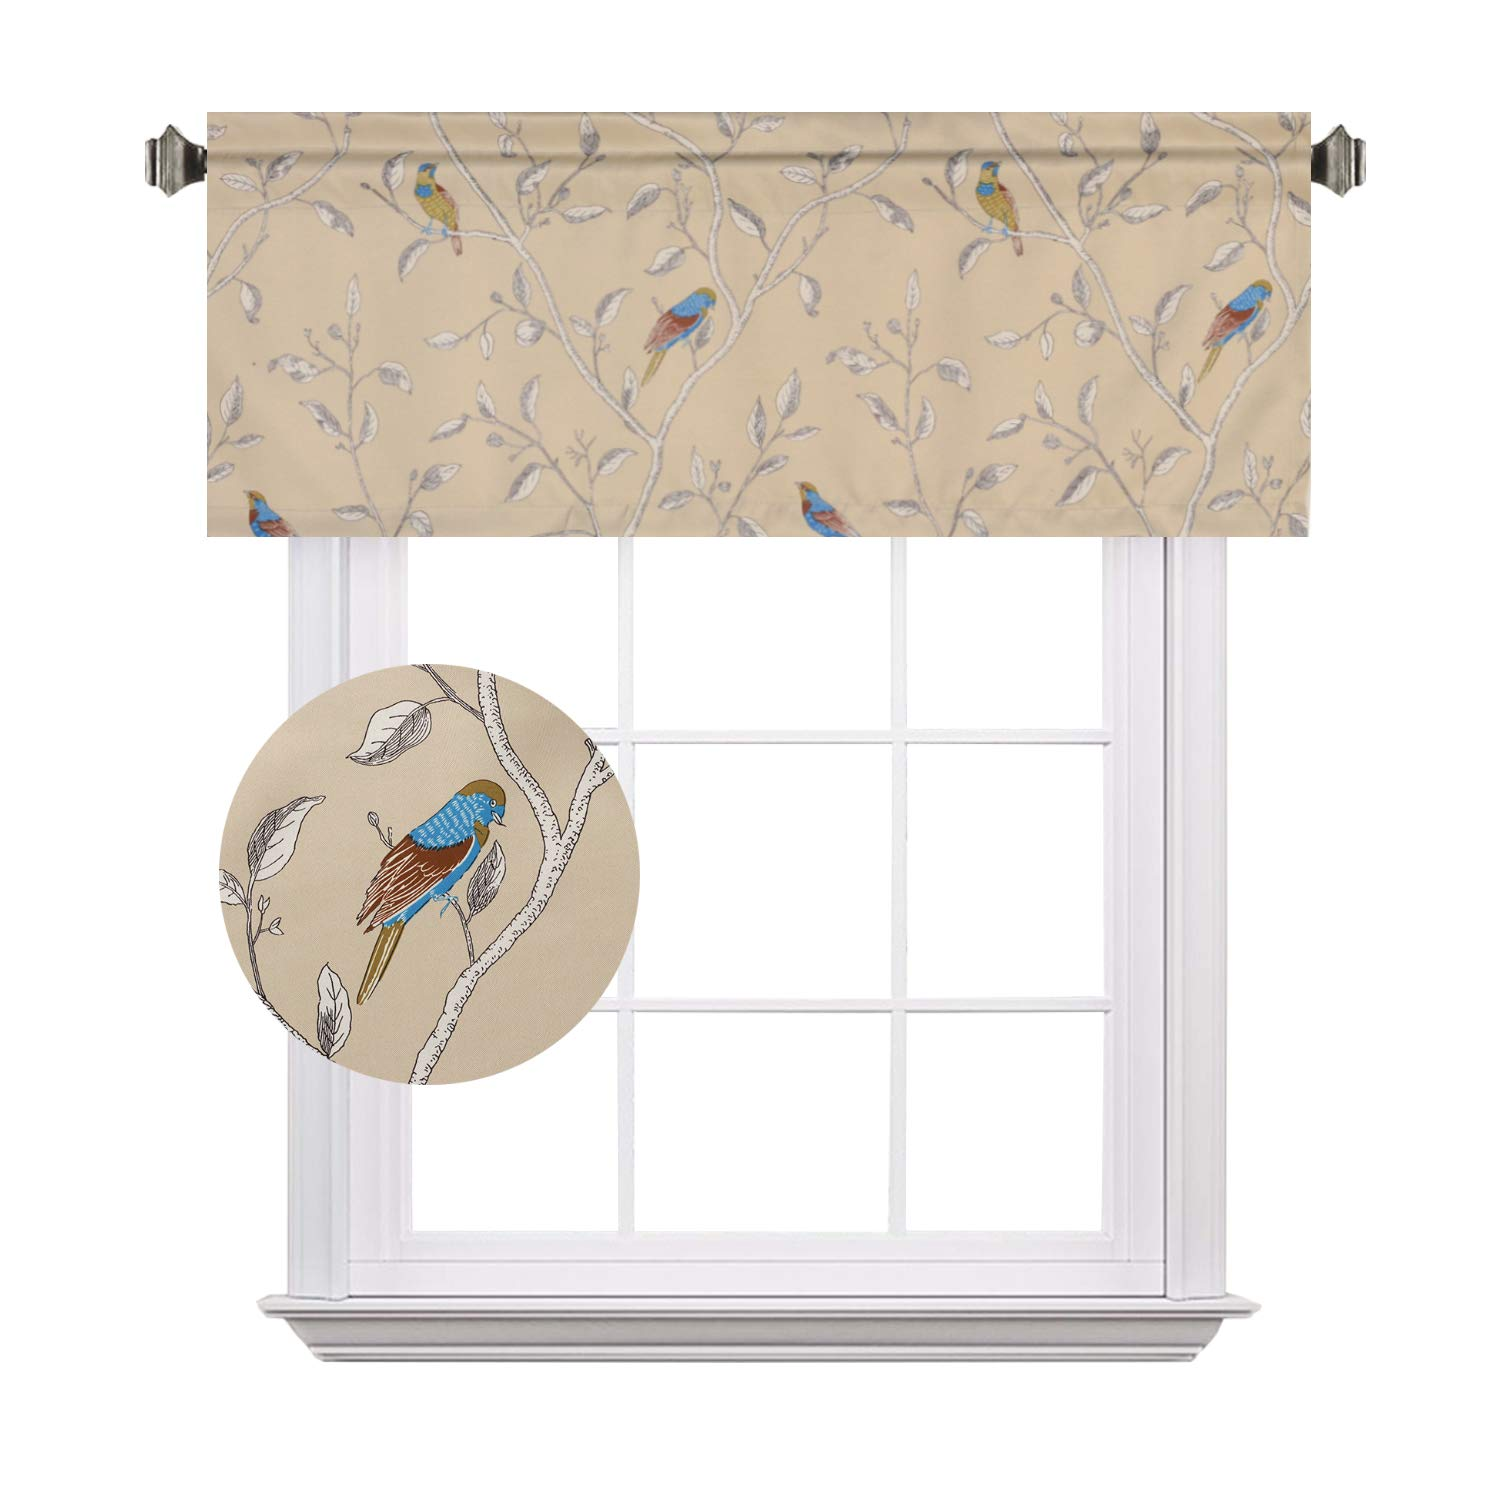 H.VERSAILTEX Birds Taupe Pattern Country Style Room Darkening Blackout Window Treatment Curtain Valance for Kitchen/Living Room/Bedroom/Laundry - Rod Pocket, 52 by 18 Inch